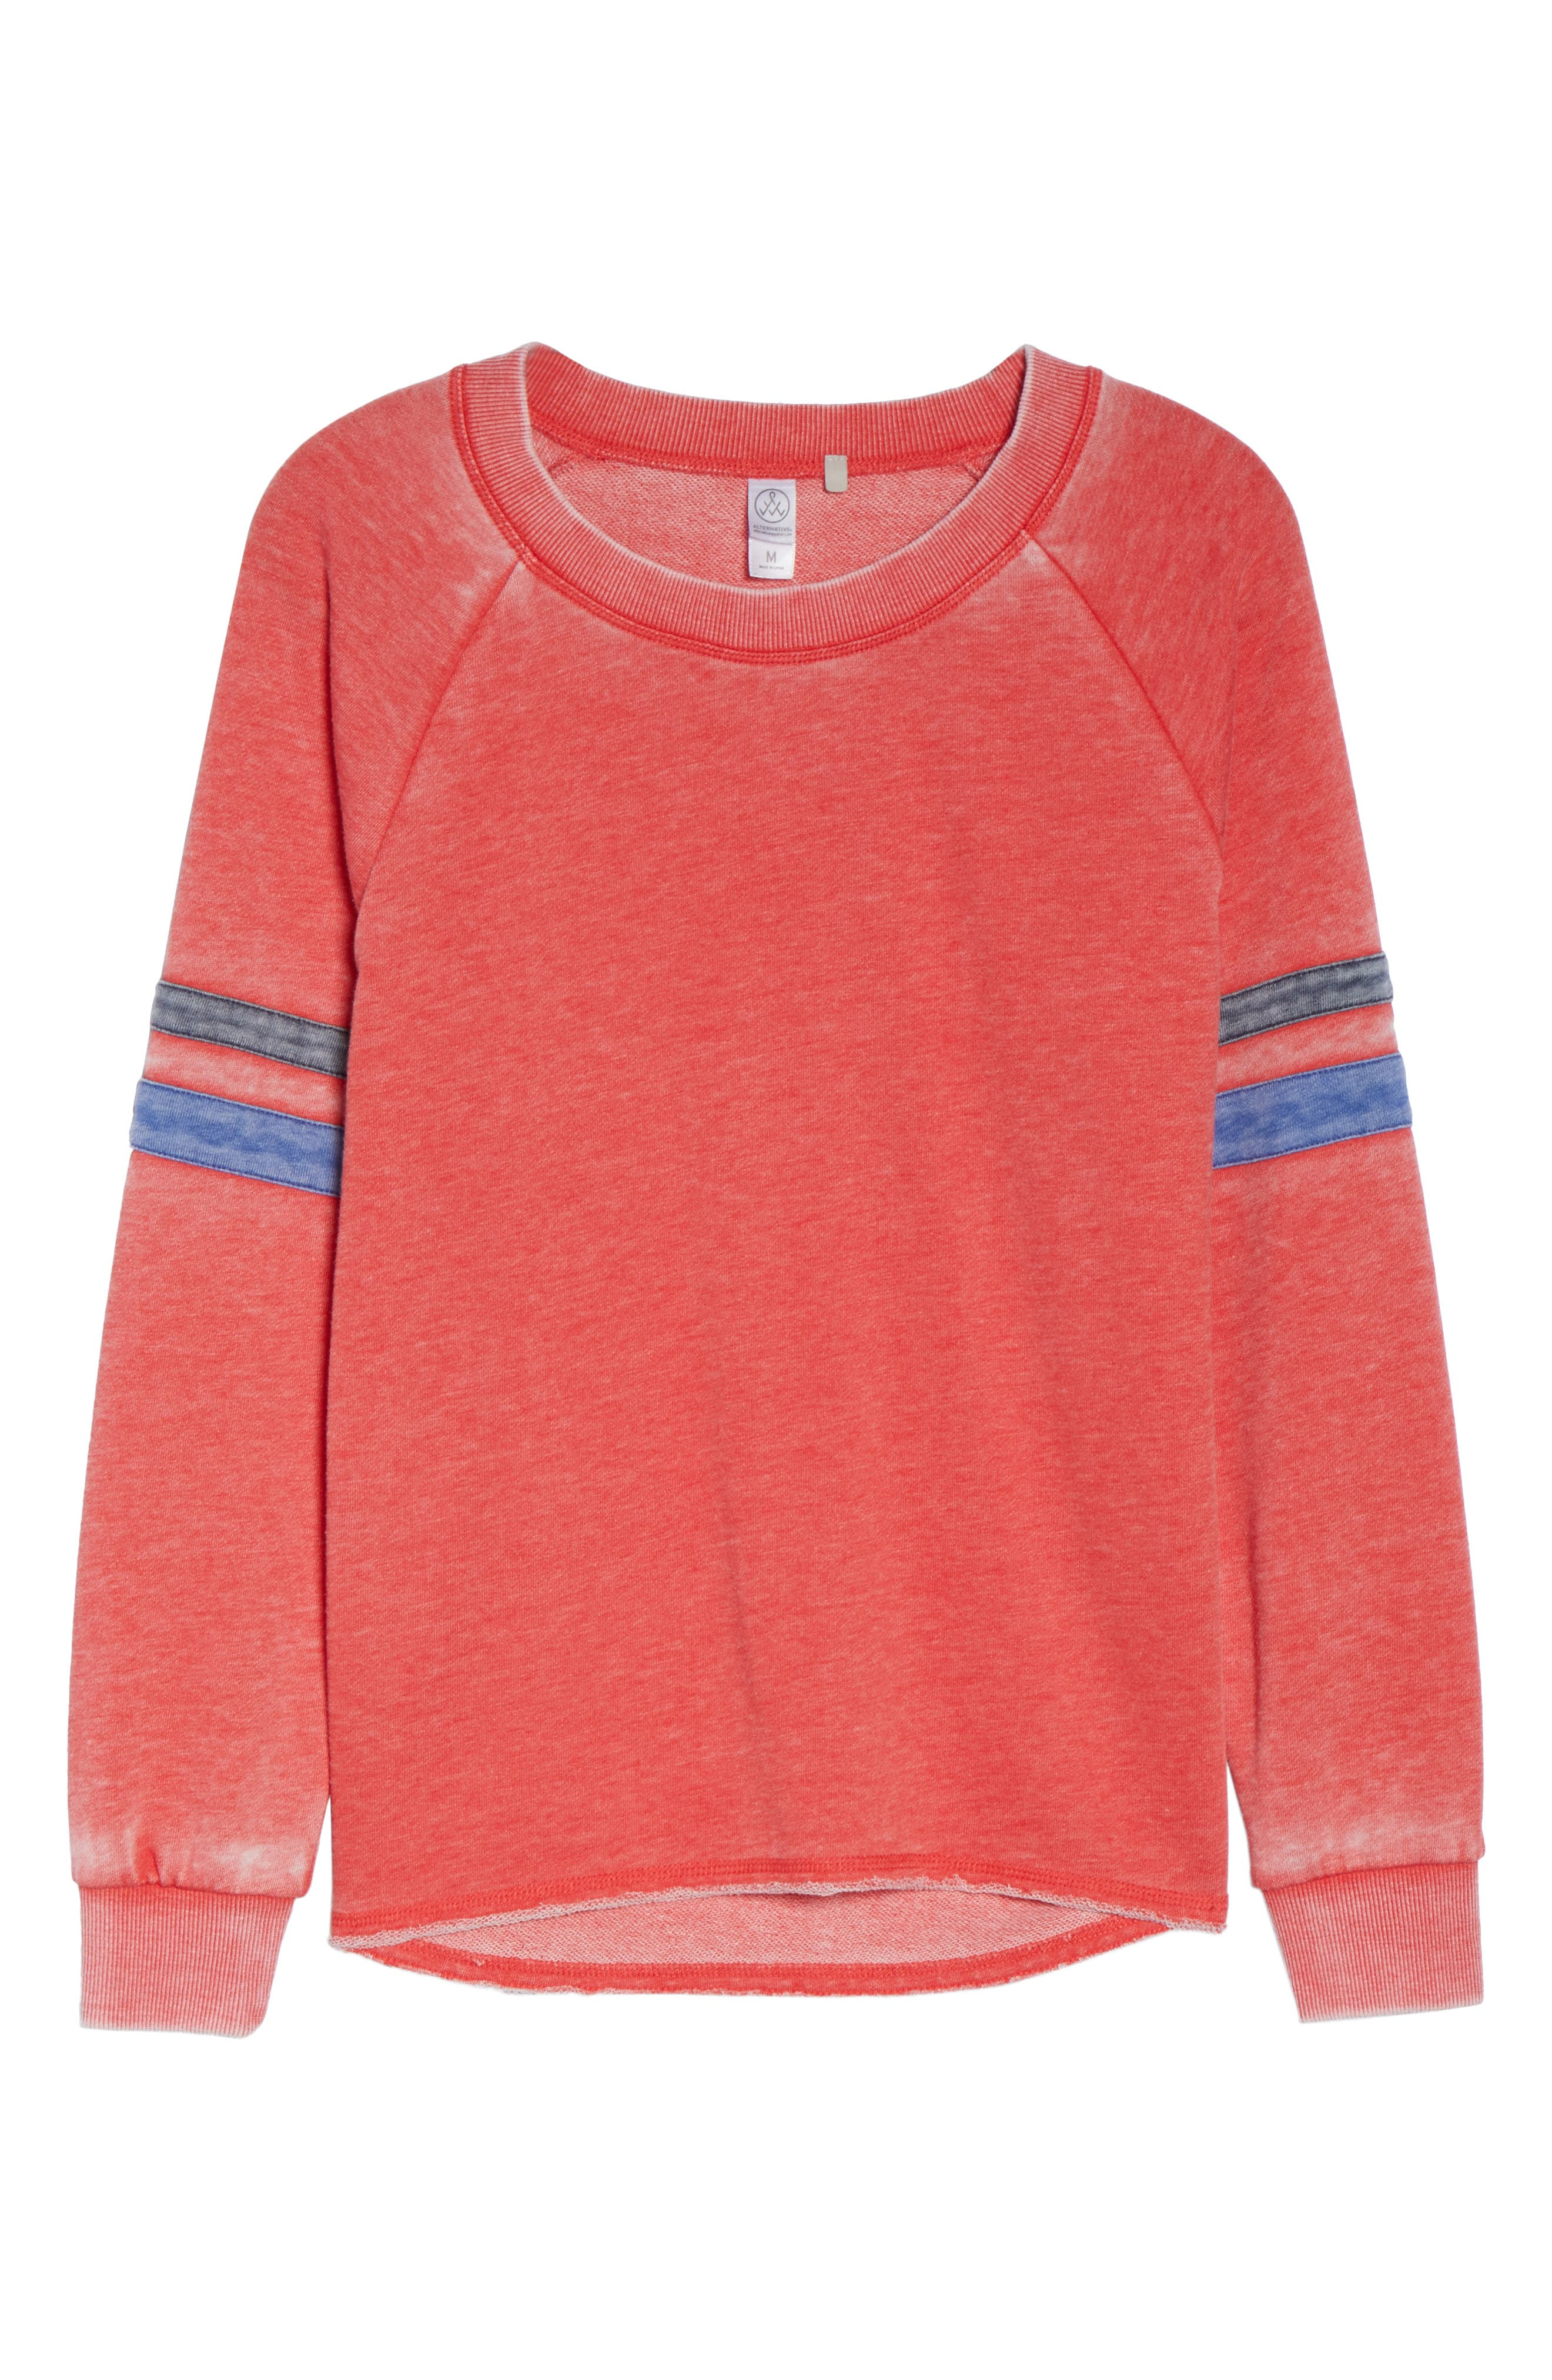 Lazy Day Sweatshirt,                             Alternate thumbnail 6, color,                             600